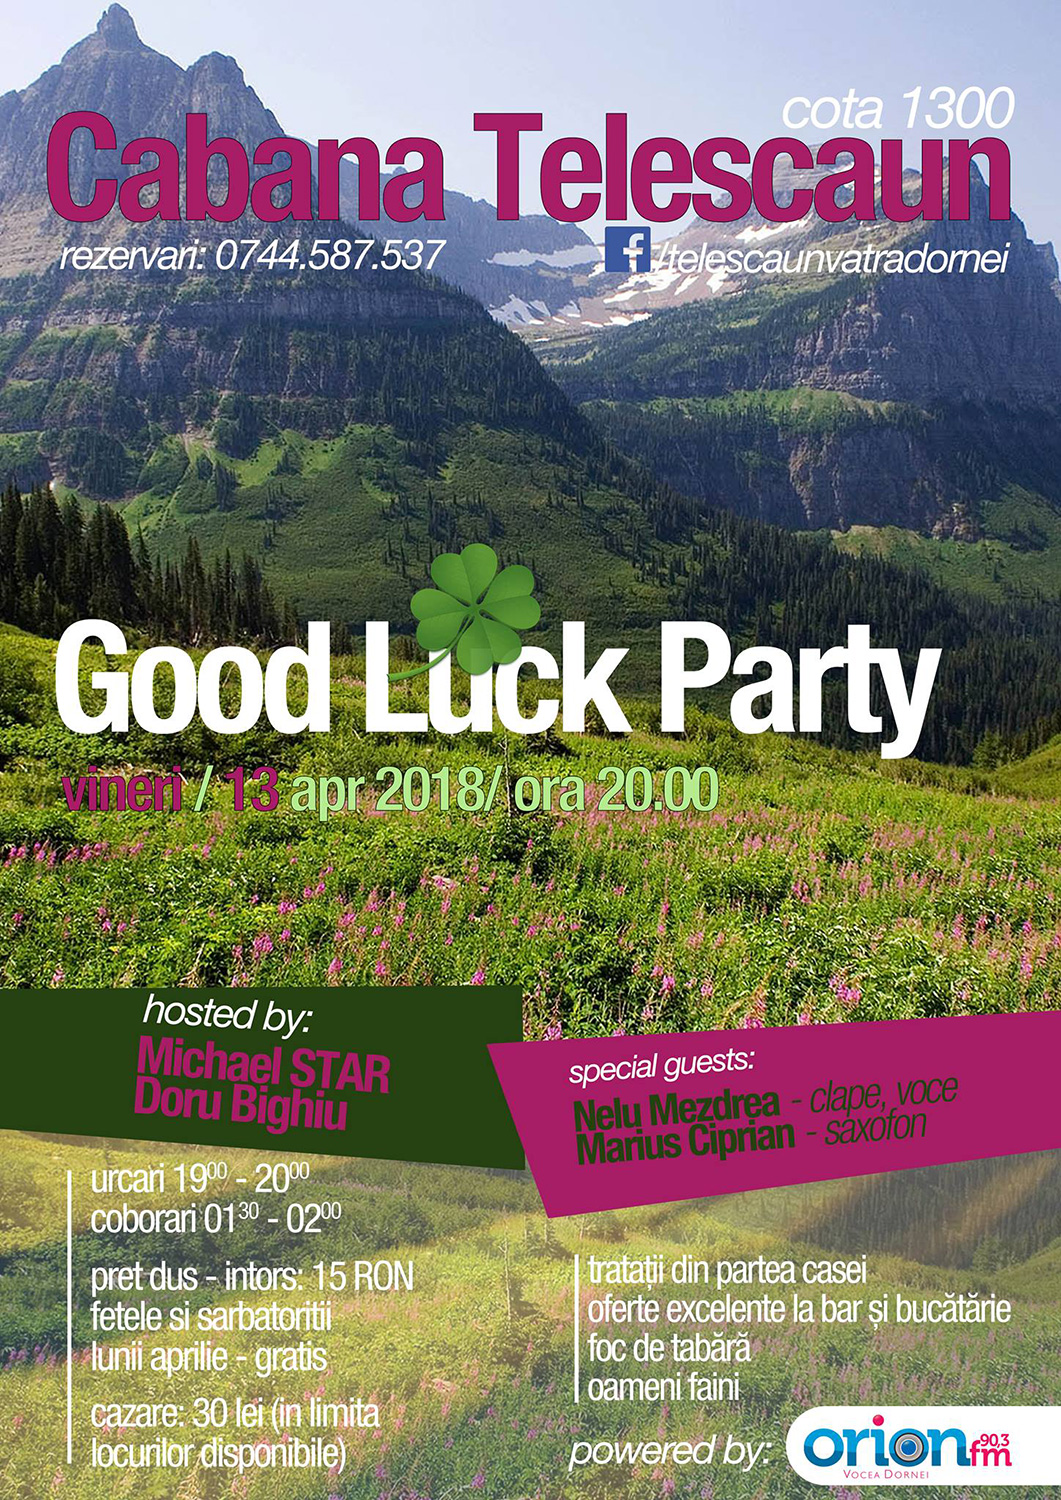 Good Luck Party